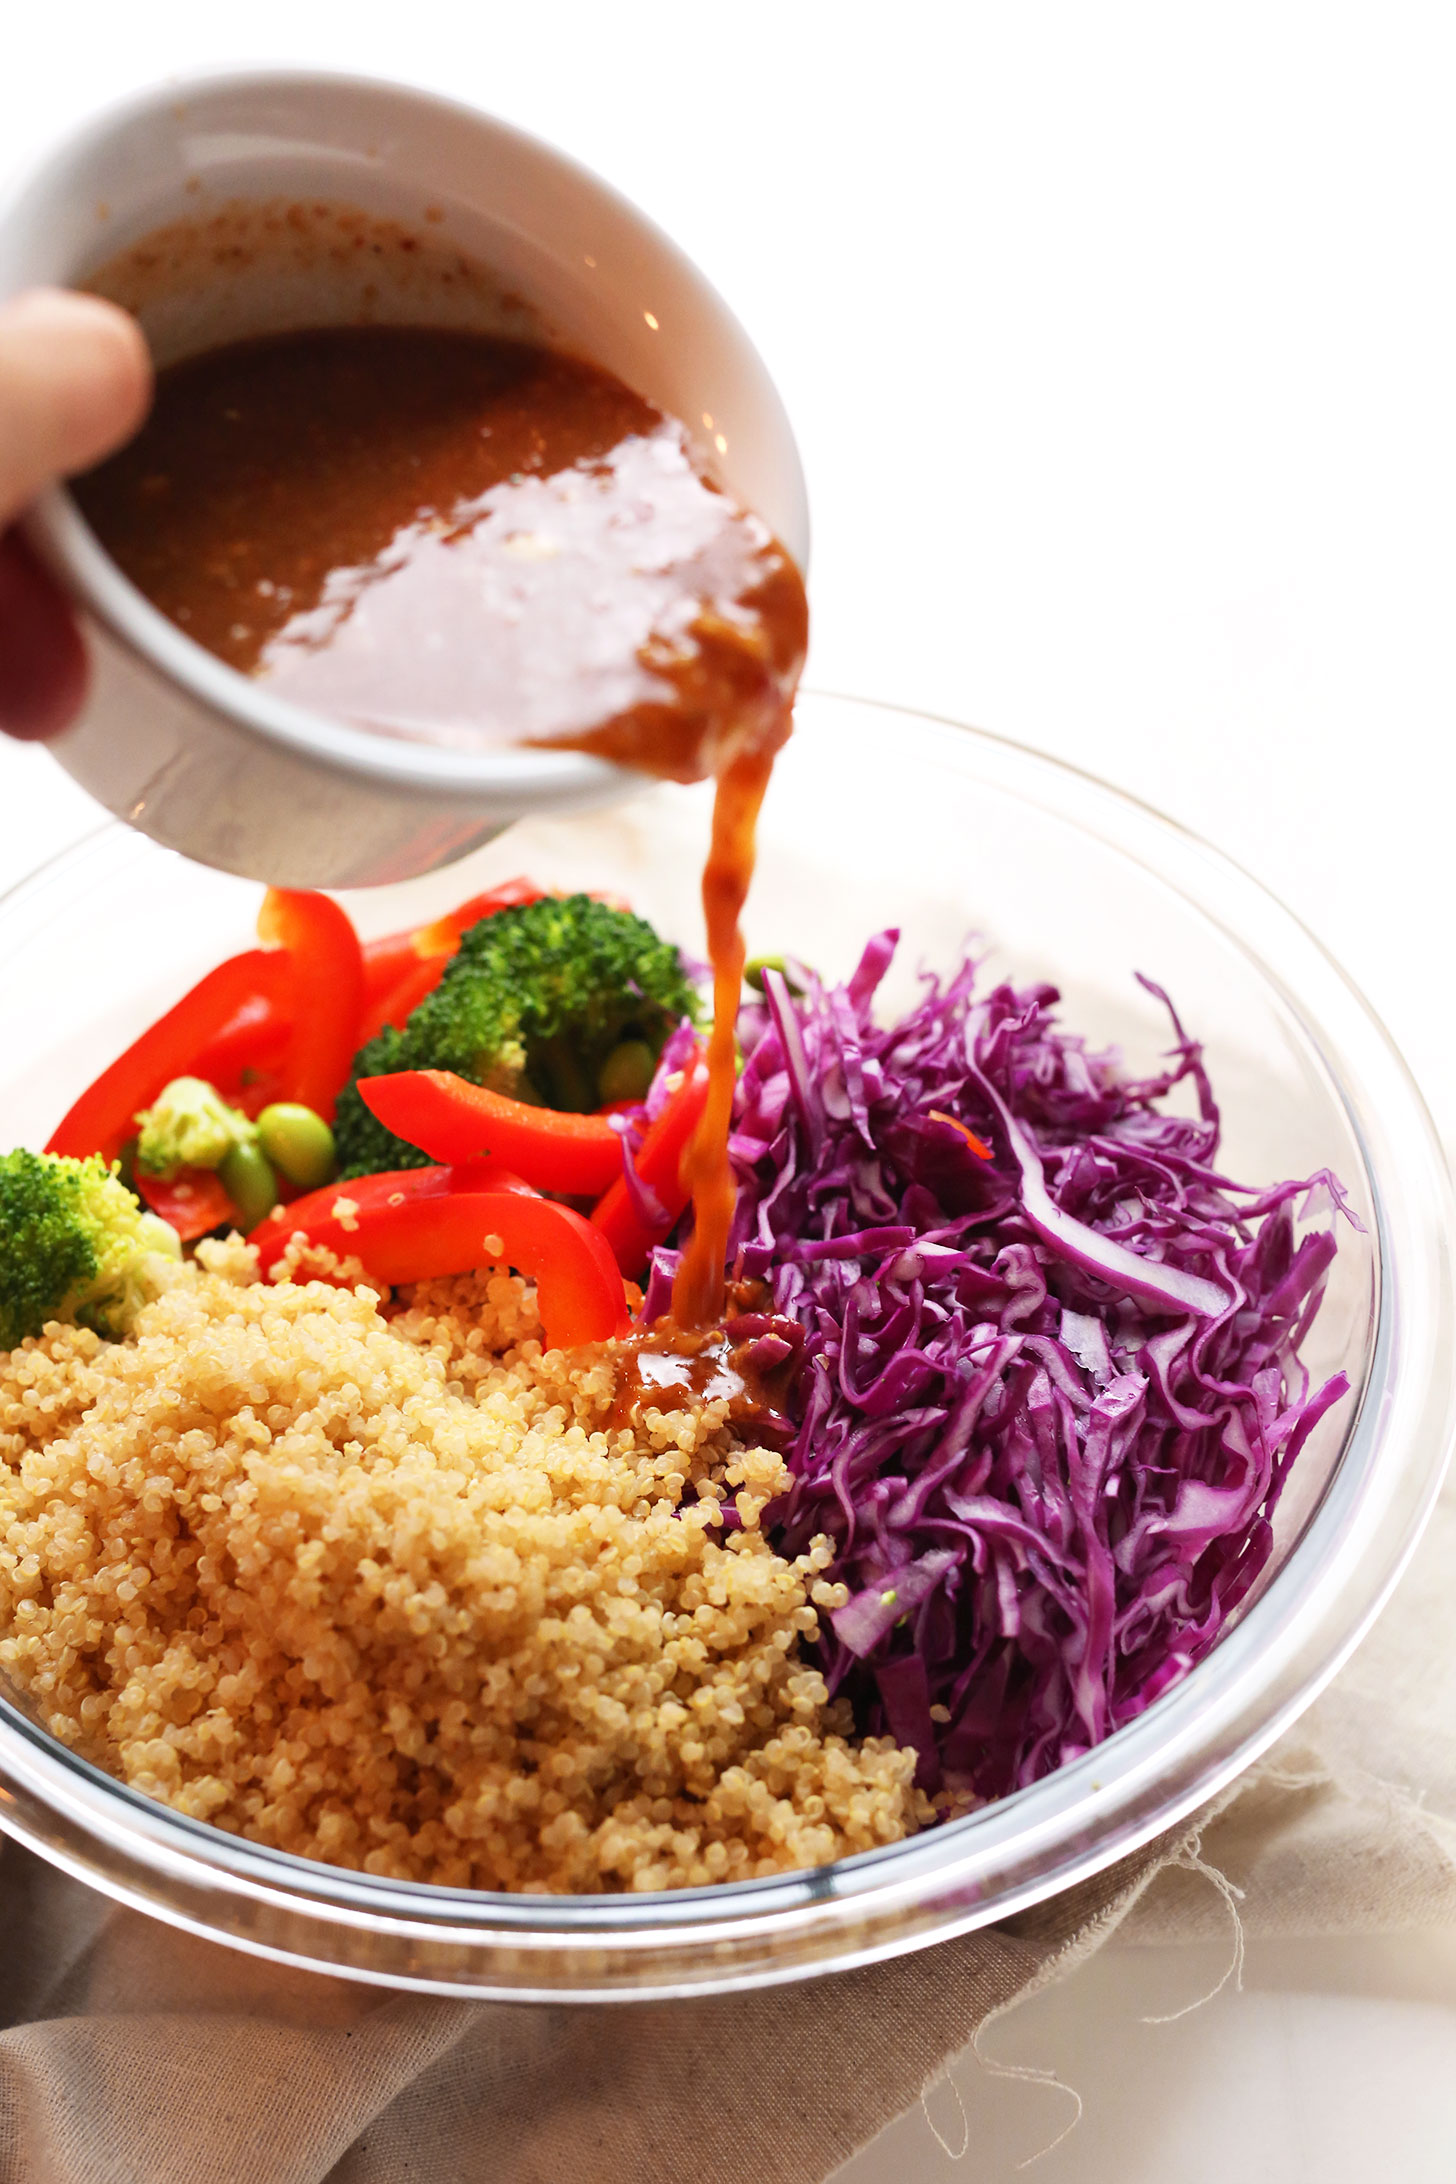 Pouring dressing over our Asian Inspired Rainbow Quinoa Salad for a protein- and fiber- rich plant-based meal